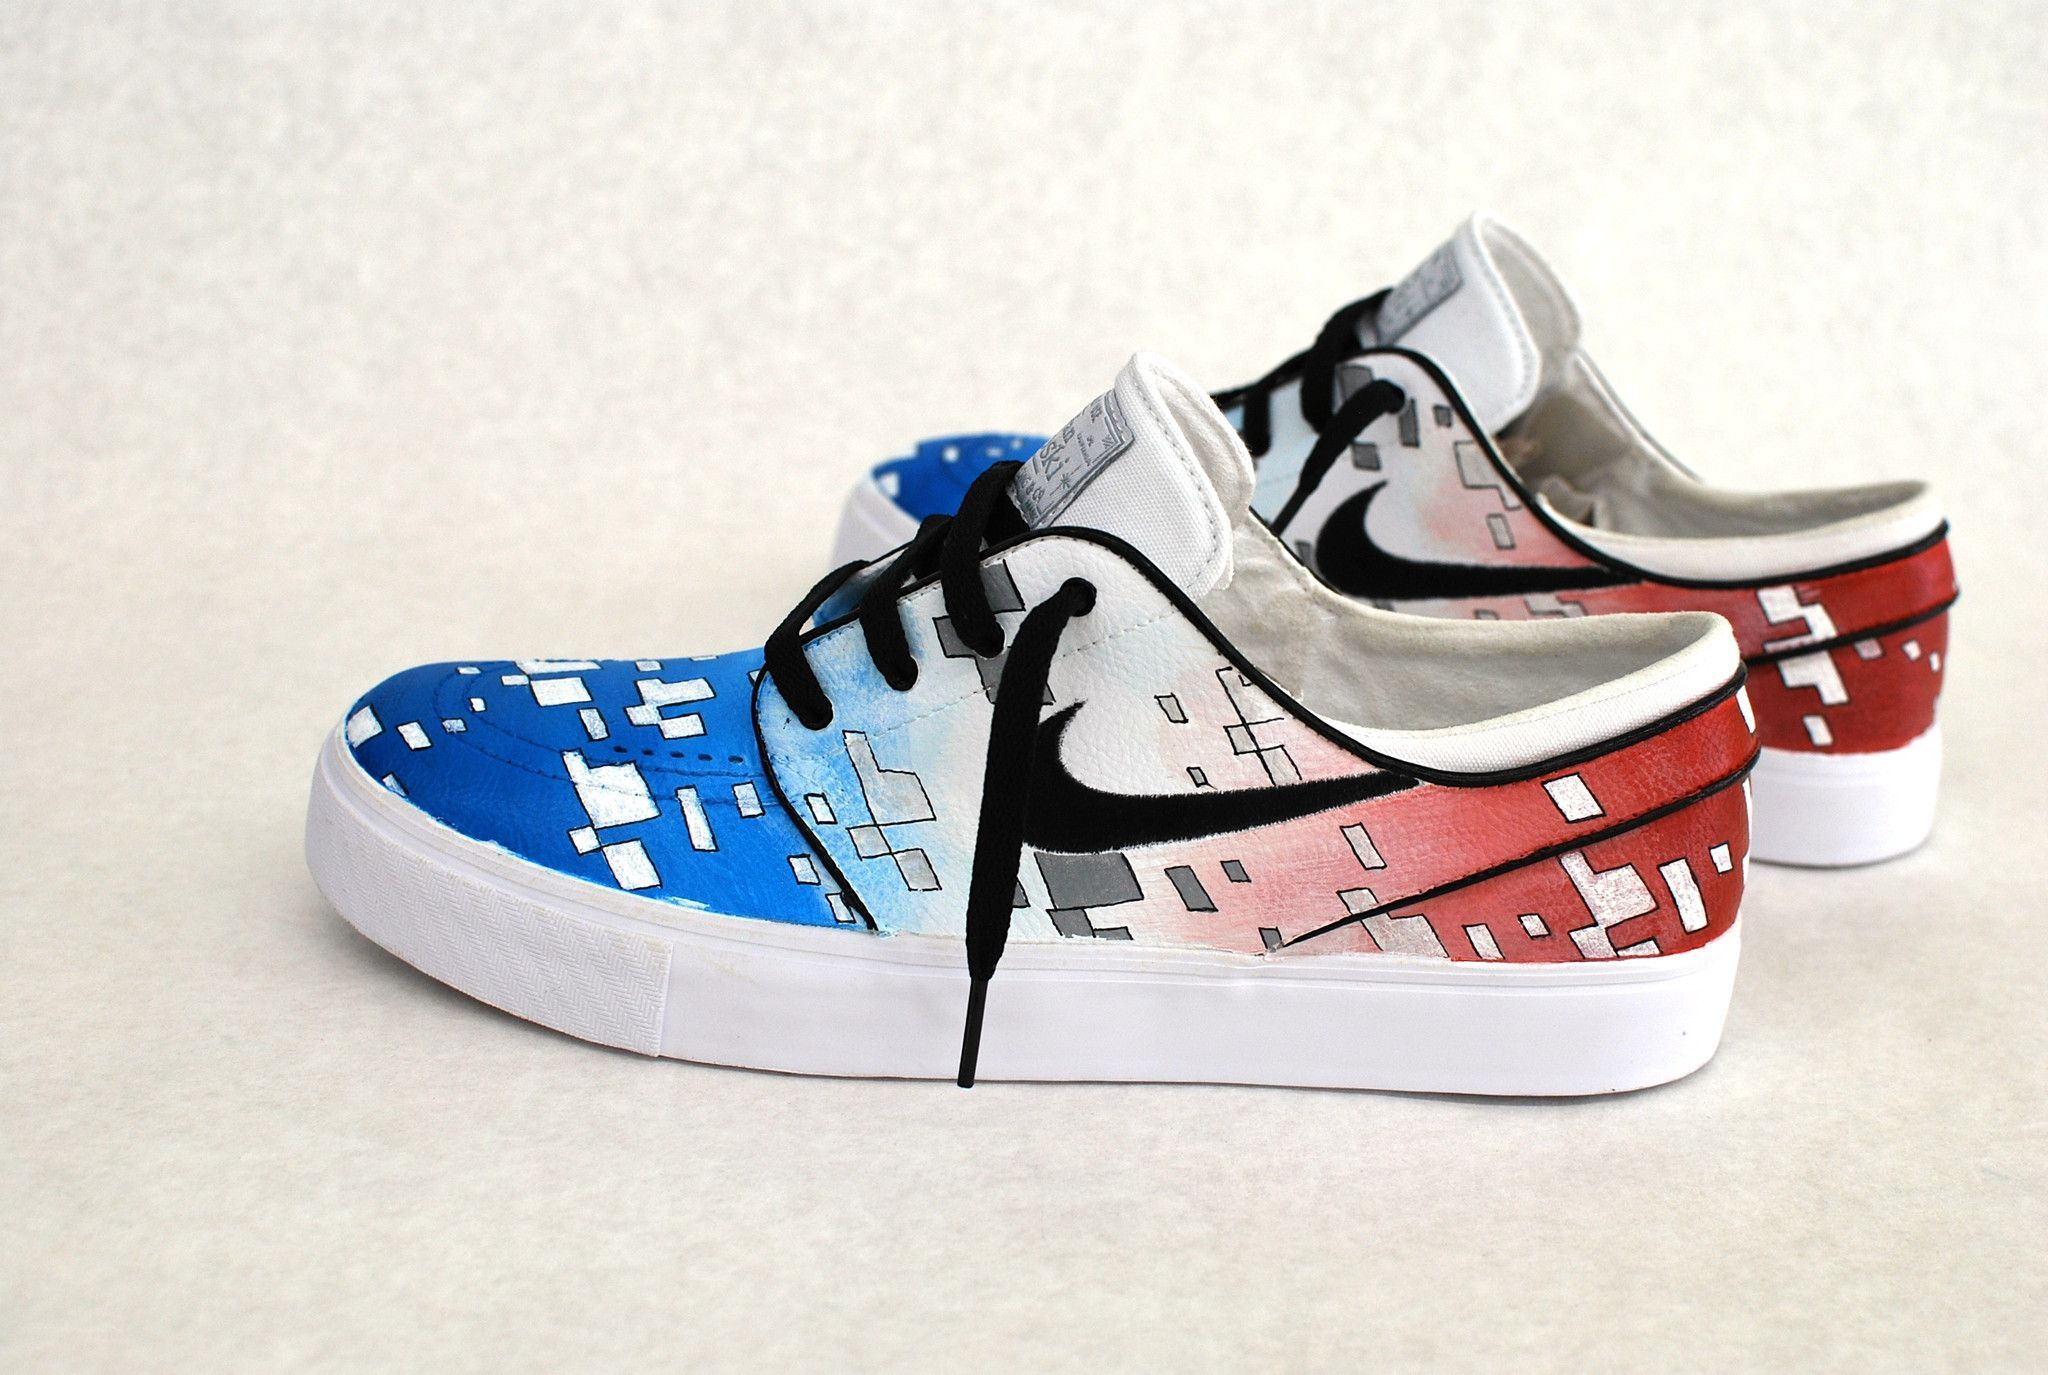 49+ Nike red white and blue shoes ideas information